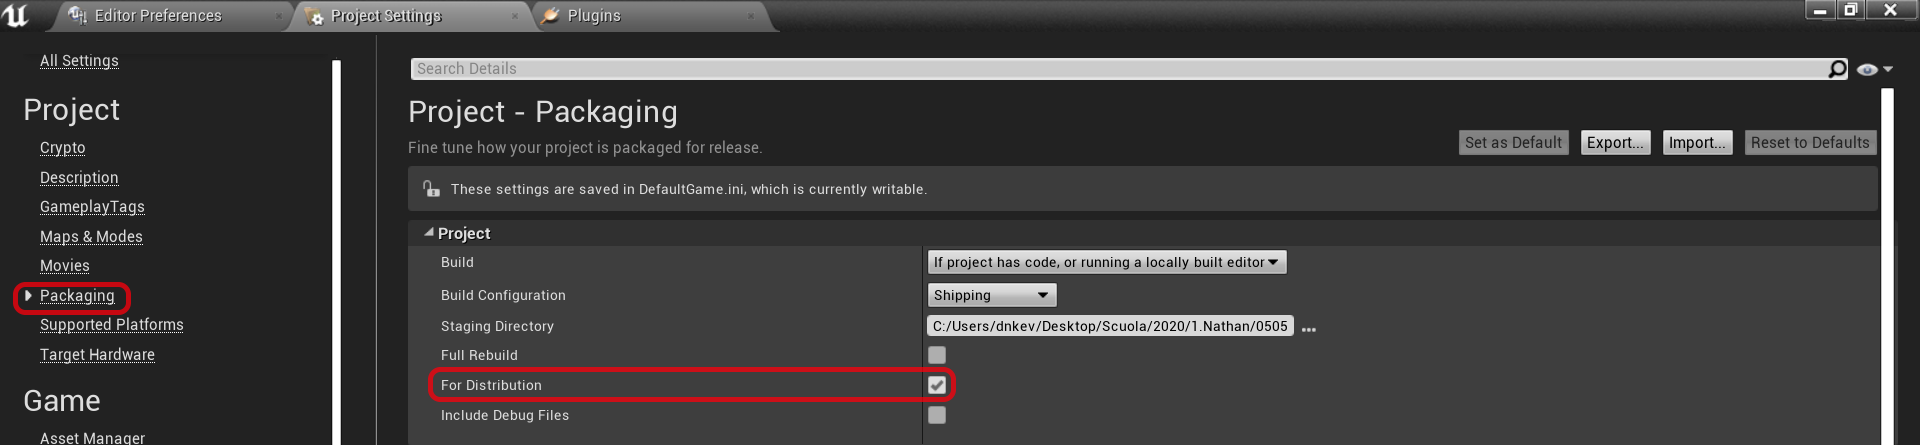 Unreal Engine 4 Check the DistributionSettings section in the Android tab of Project Settings.